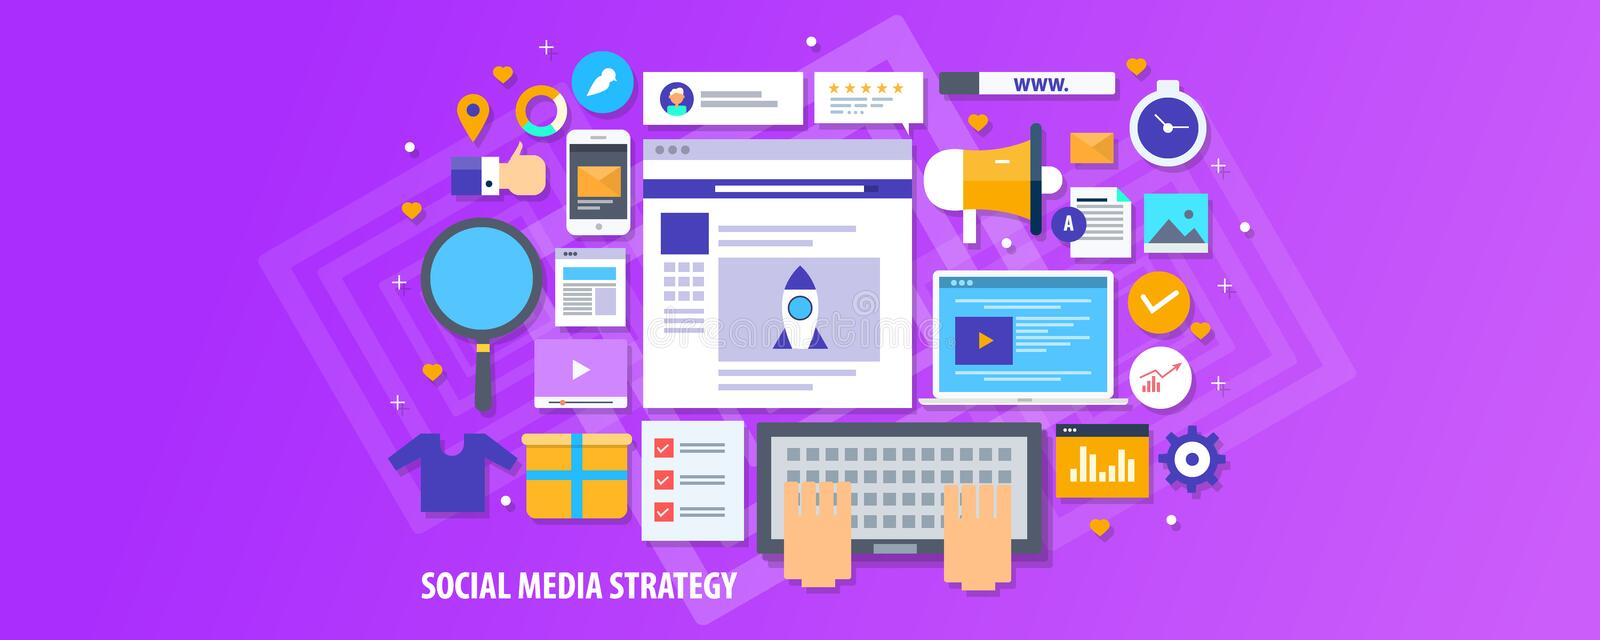 Social media strategy, influencer marketing, content promotion, audience engagement concept. Flat design vector banner. Commercial blogging, content marketing stock illustration